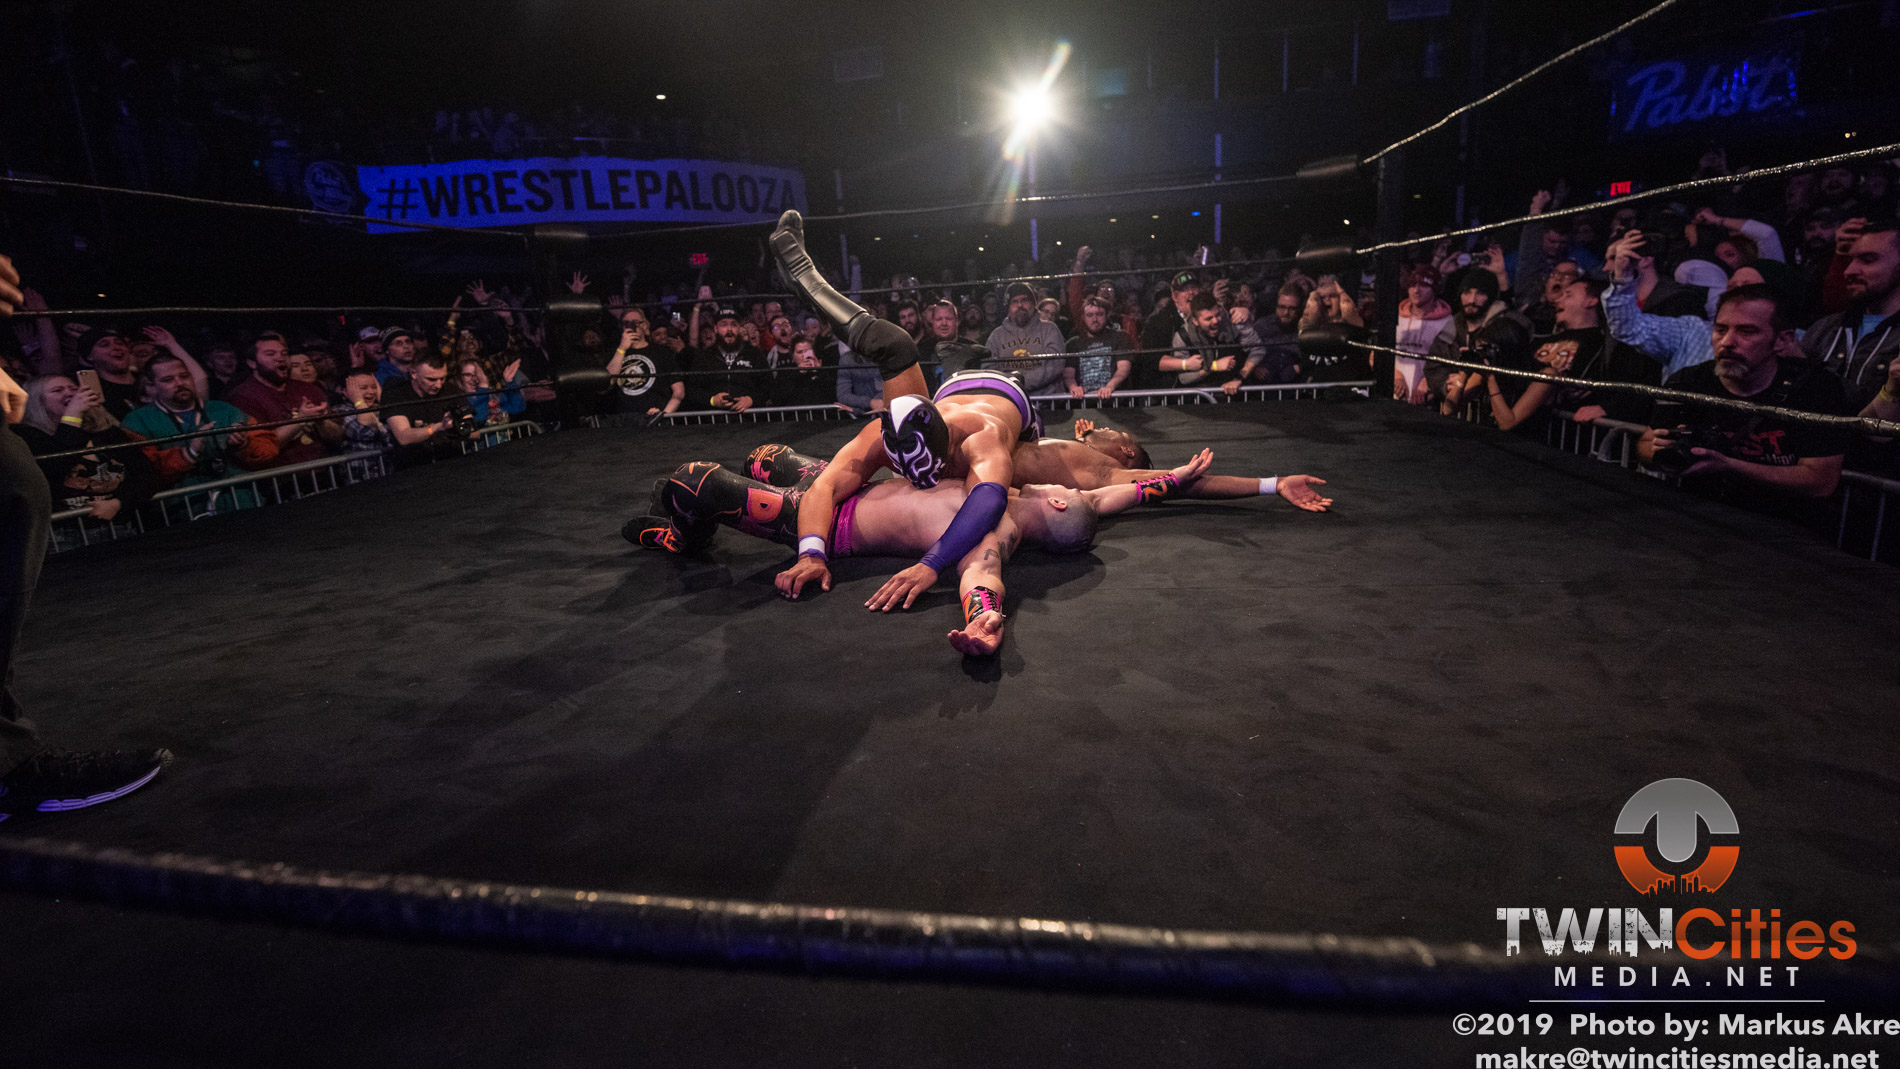 Wrestlepalooza - Match 6-16